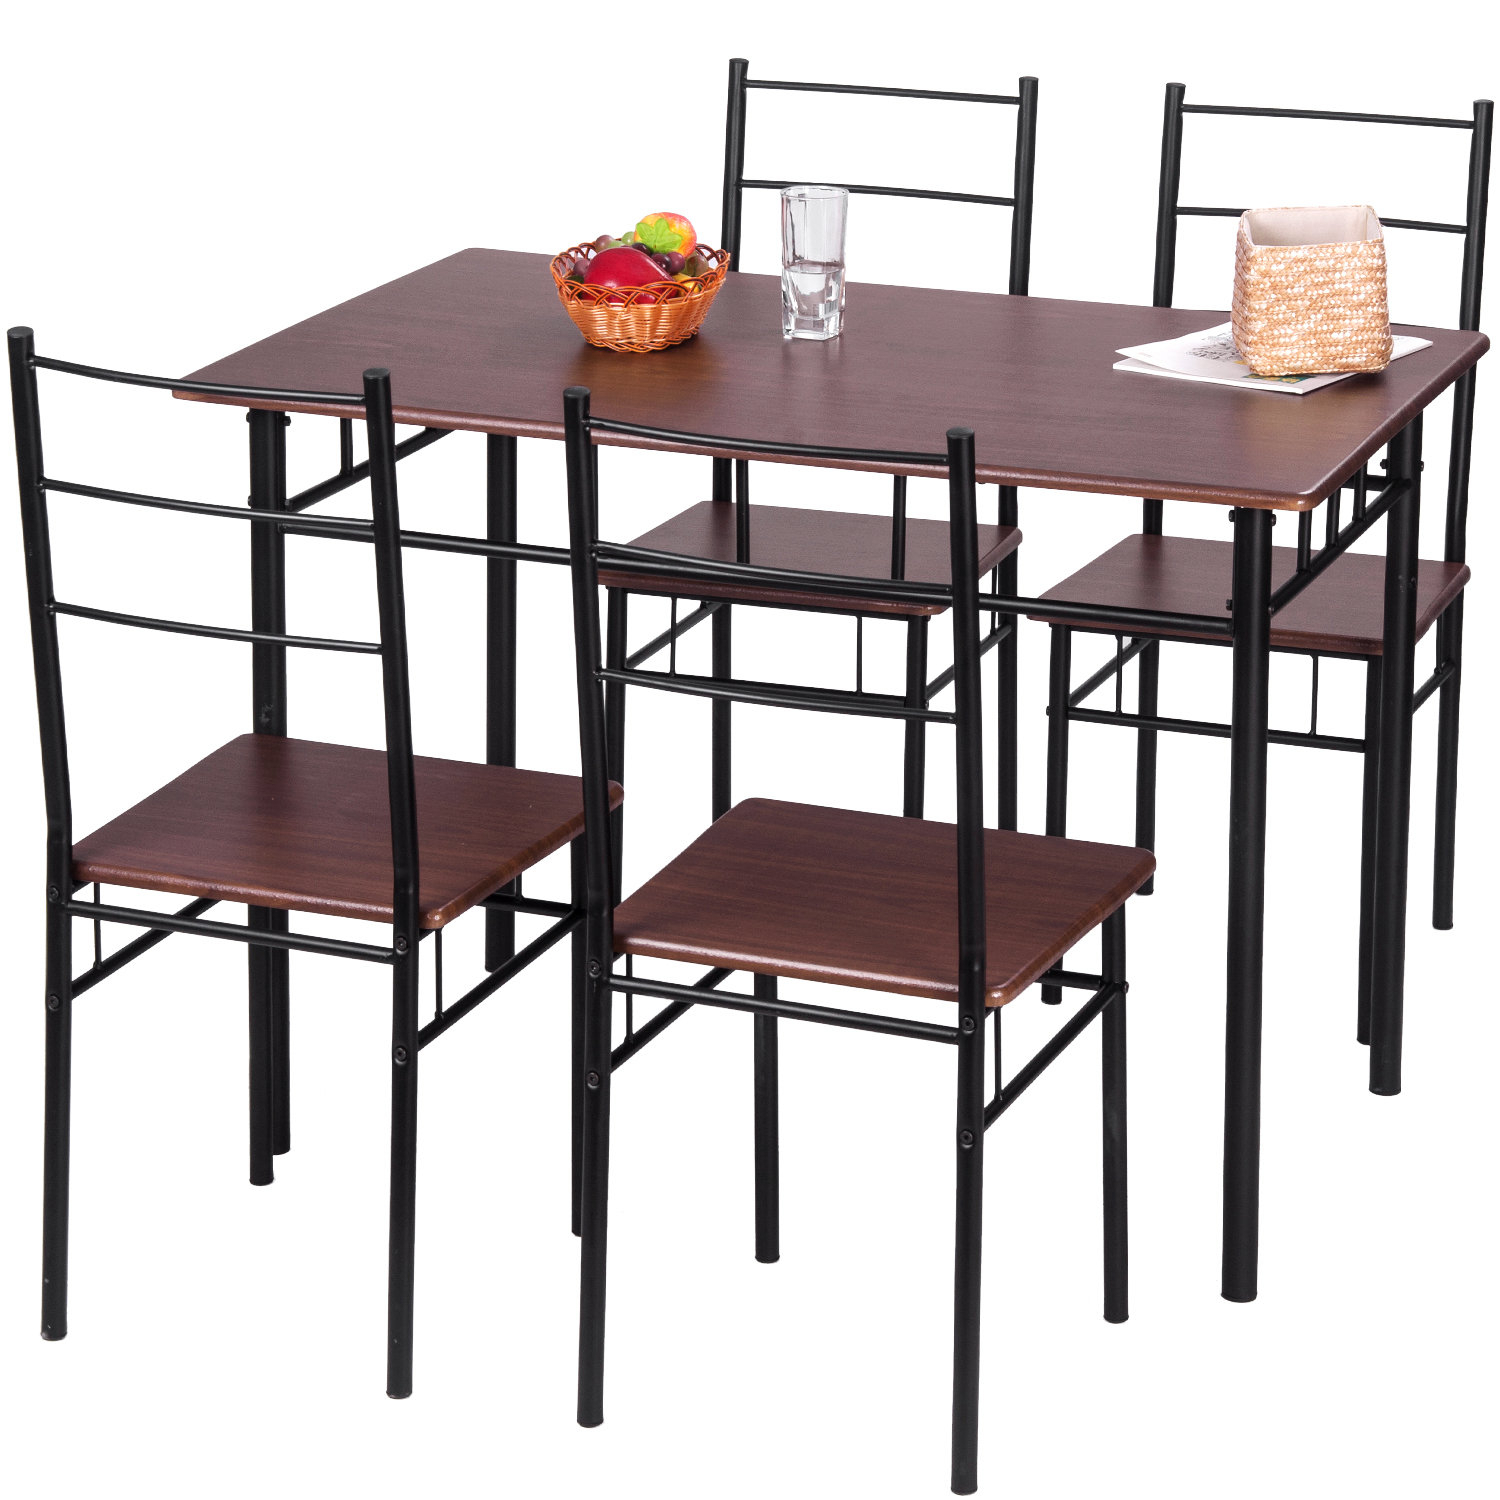 Inspiration about Wayfair With Regard To Favorite Ephraim 5 Piece Dining Sets (#4 of 20)